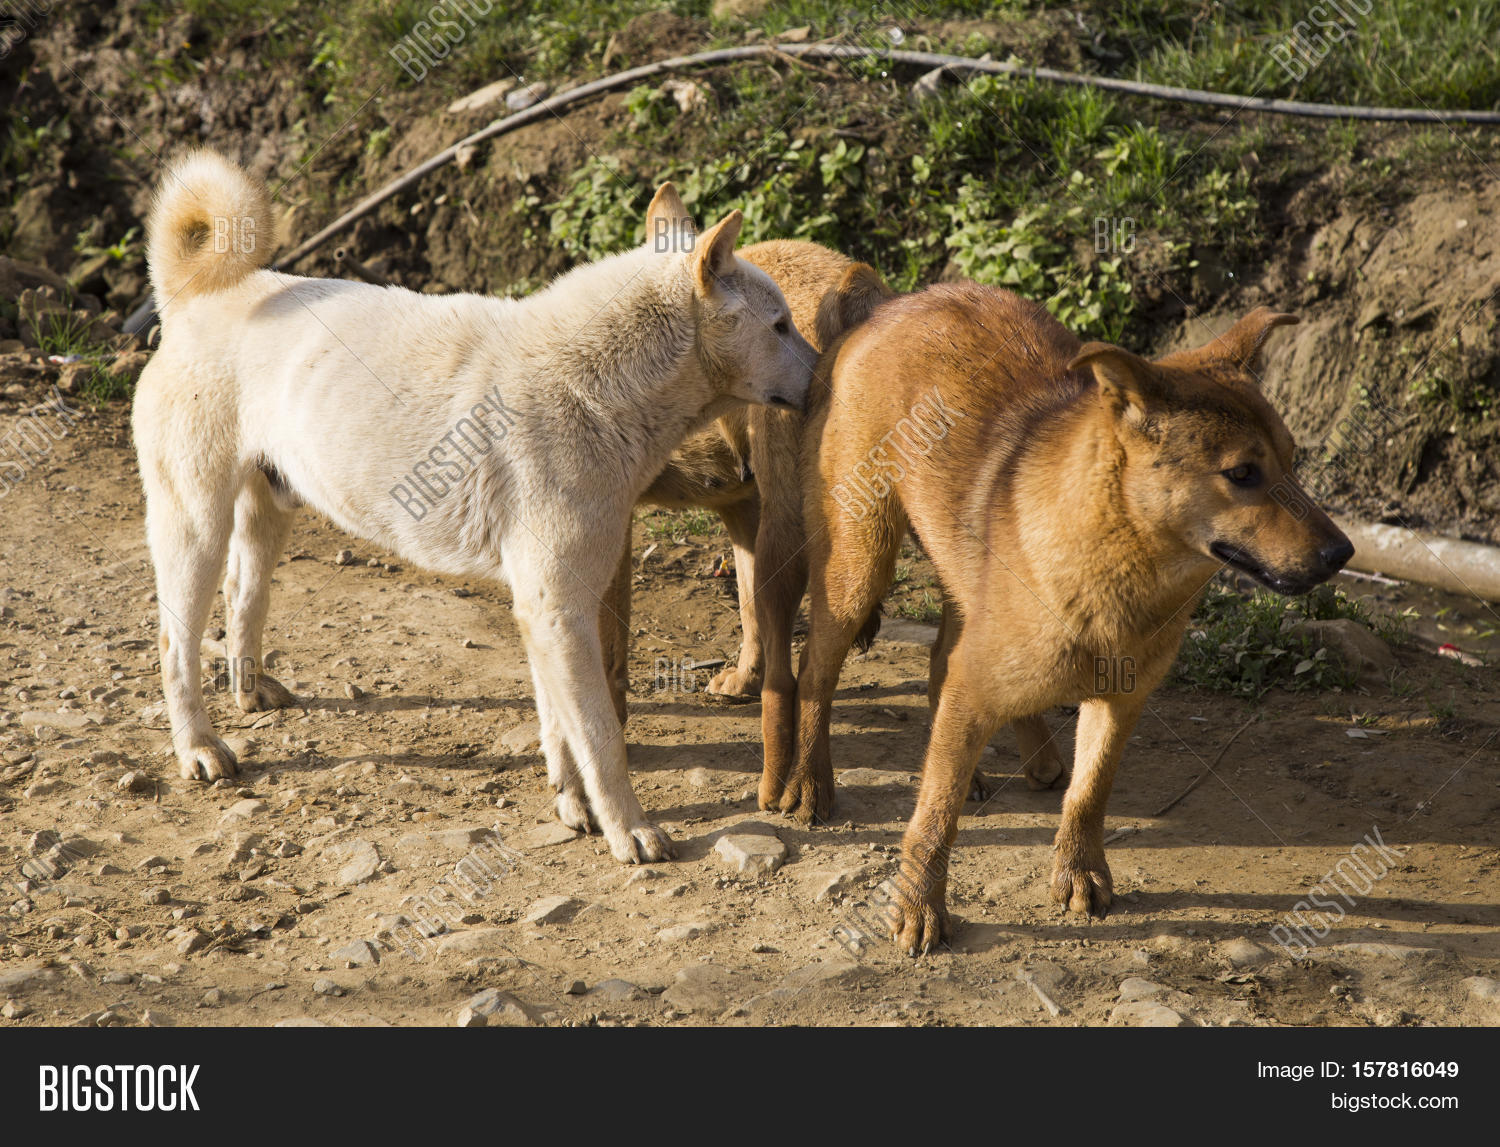 Large Dogs Mating